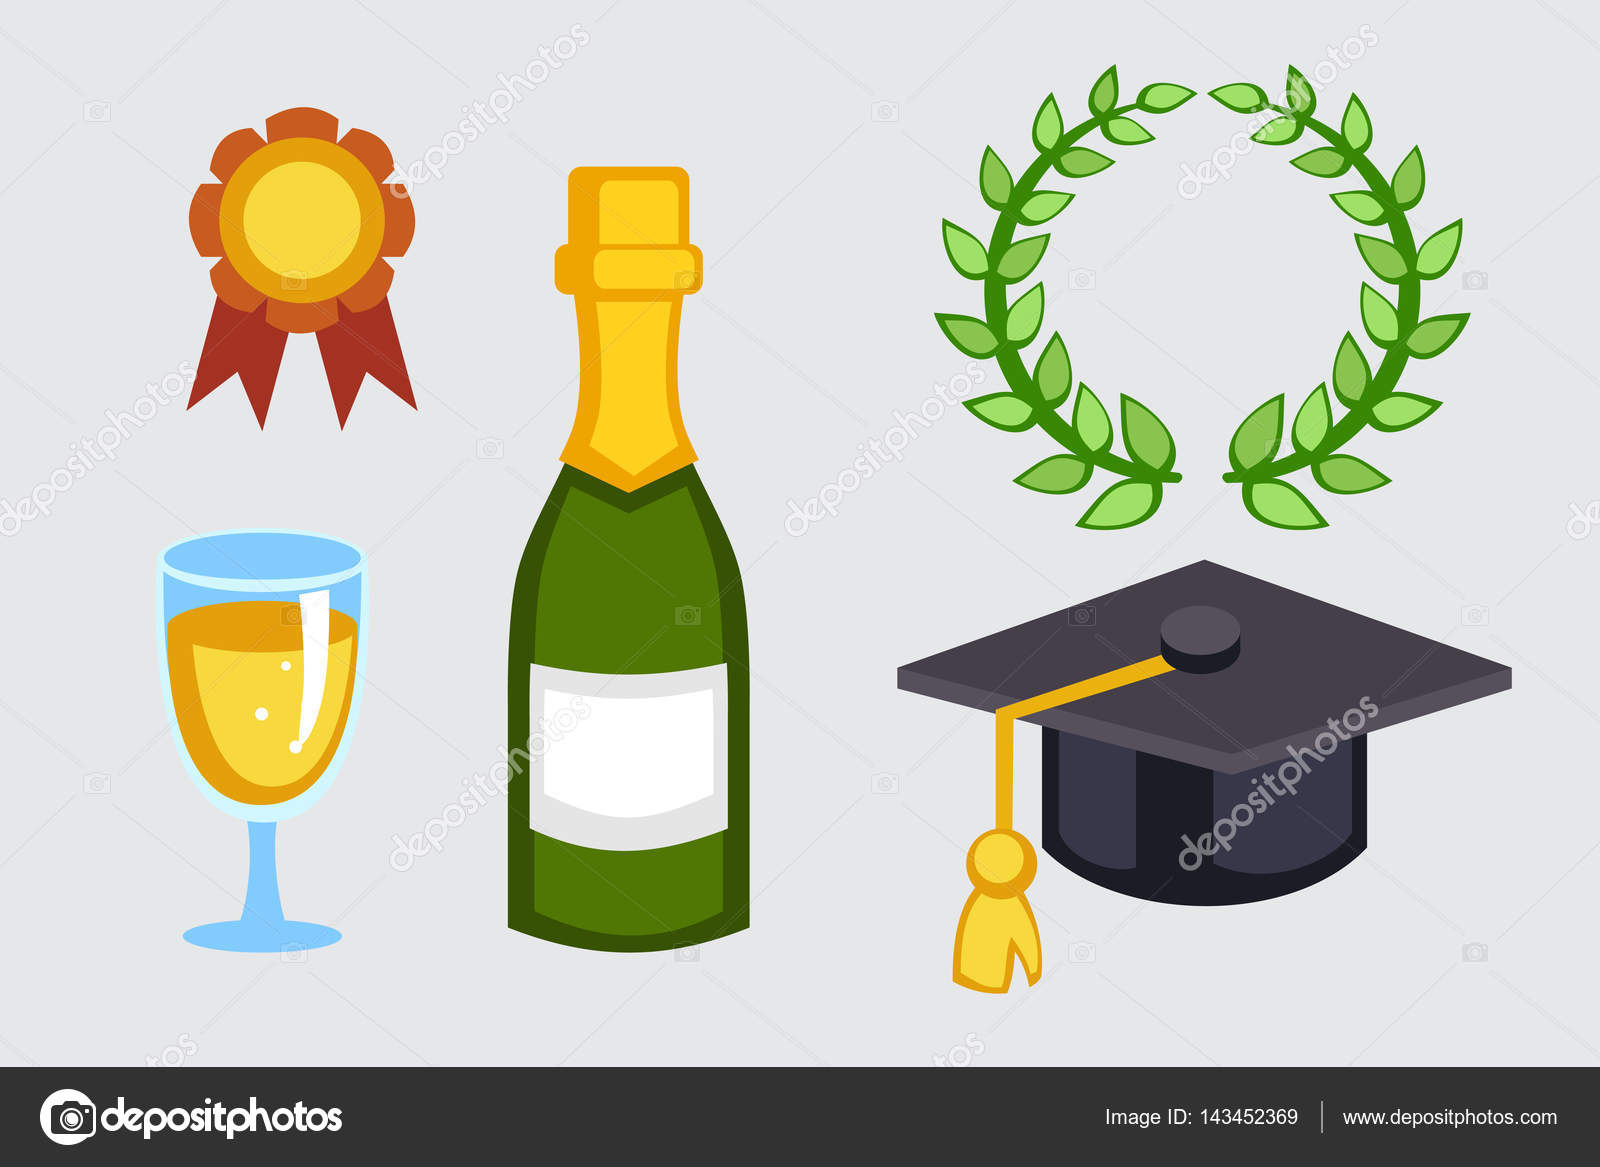 champagne bottle and graduation hat vector illustration holiday gold wine glass new year party beverage romantic drink bottle